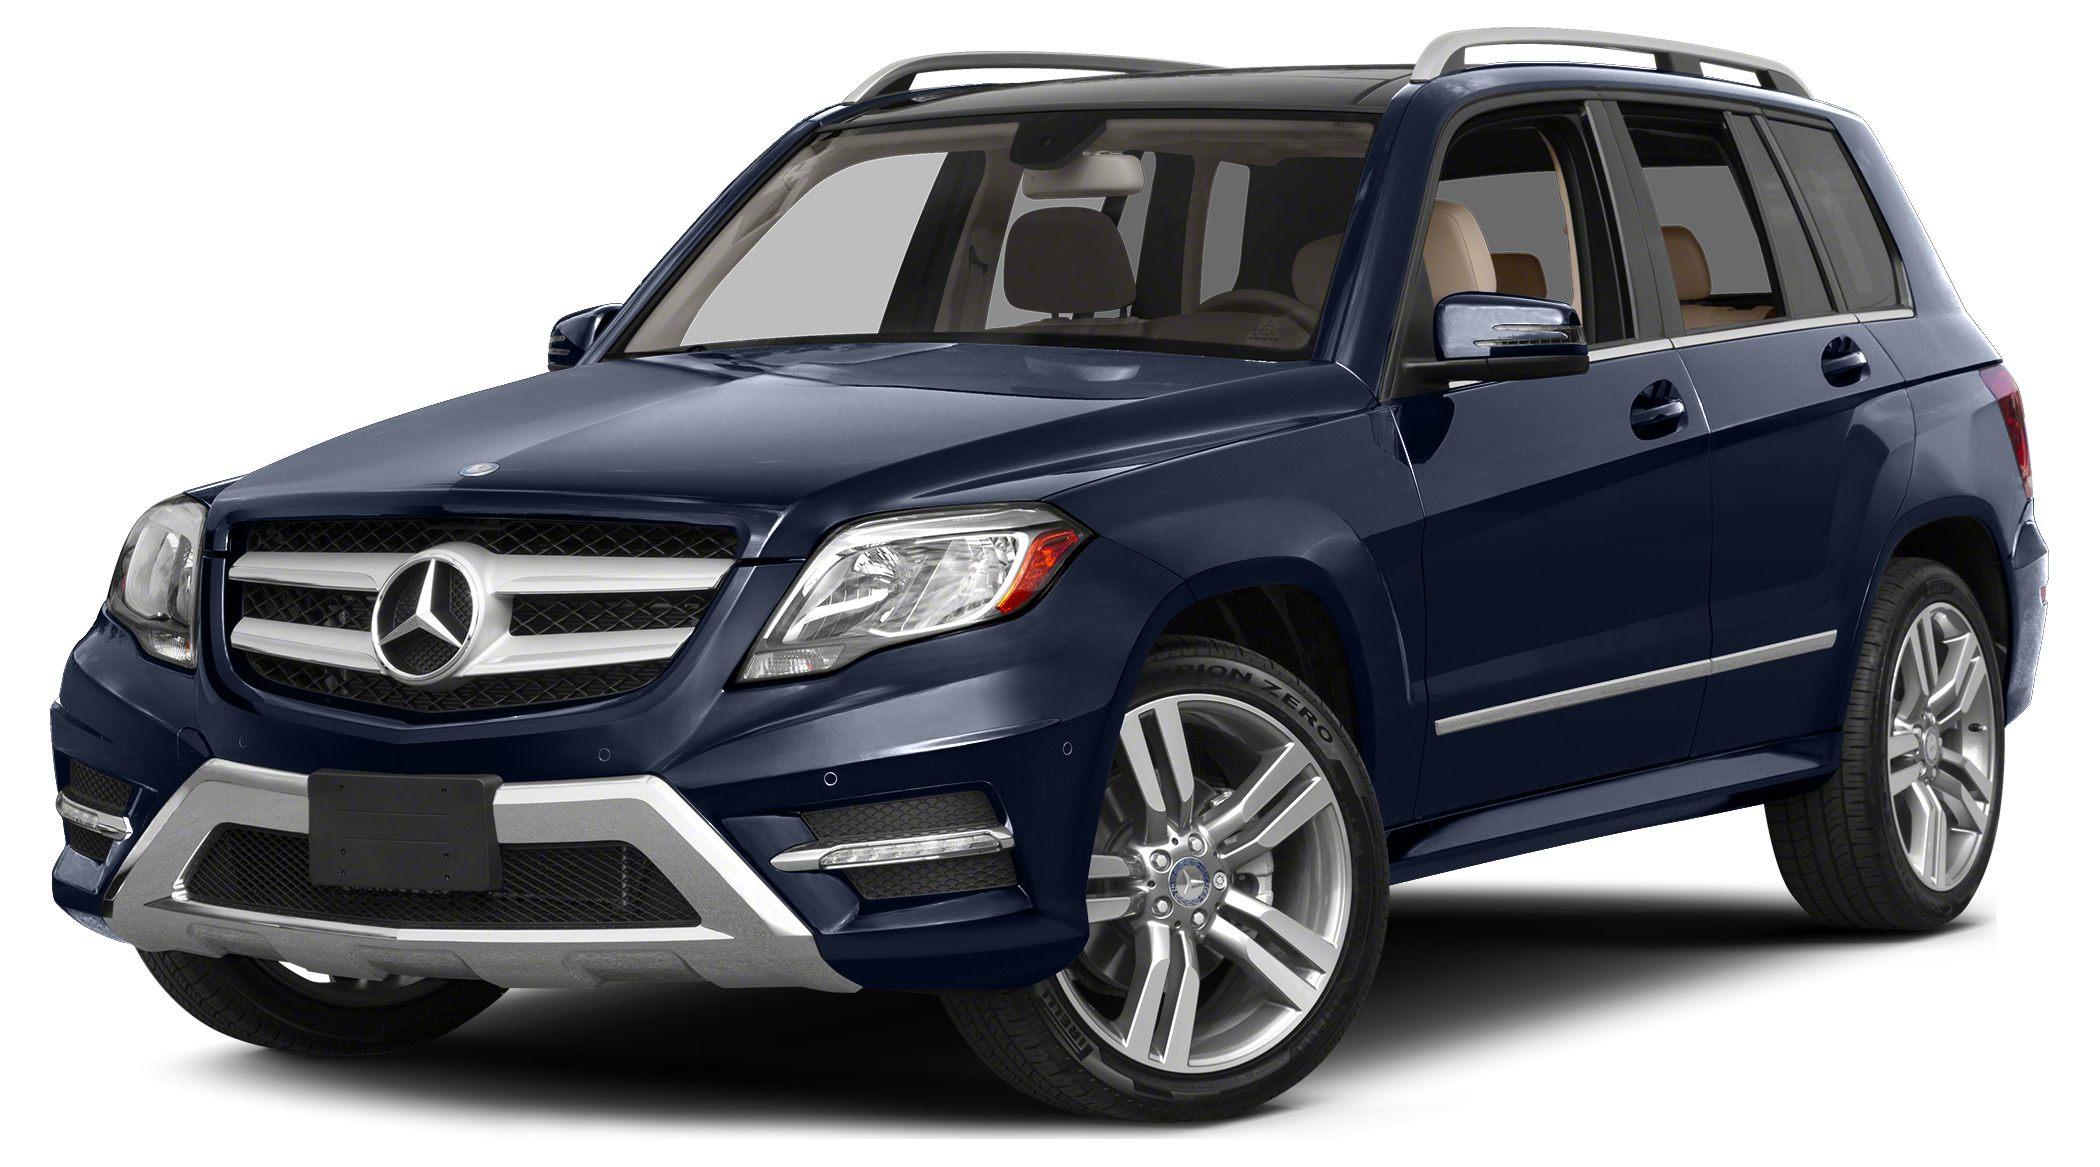 2014 MERCEDES GLK-Class GLK350 CERTIFIED PRE-OWNED CARFAX CERTIFIED 2014 MERCEDES GLK350 L